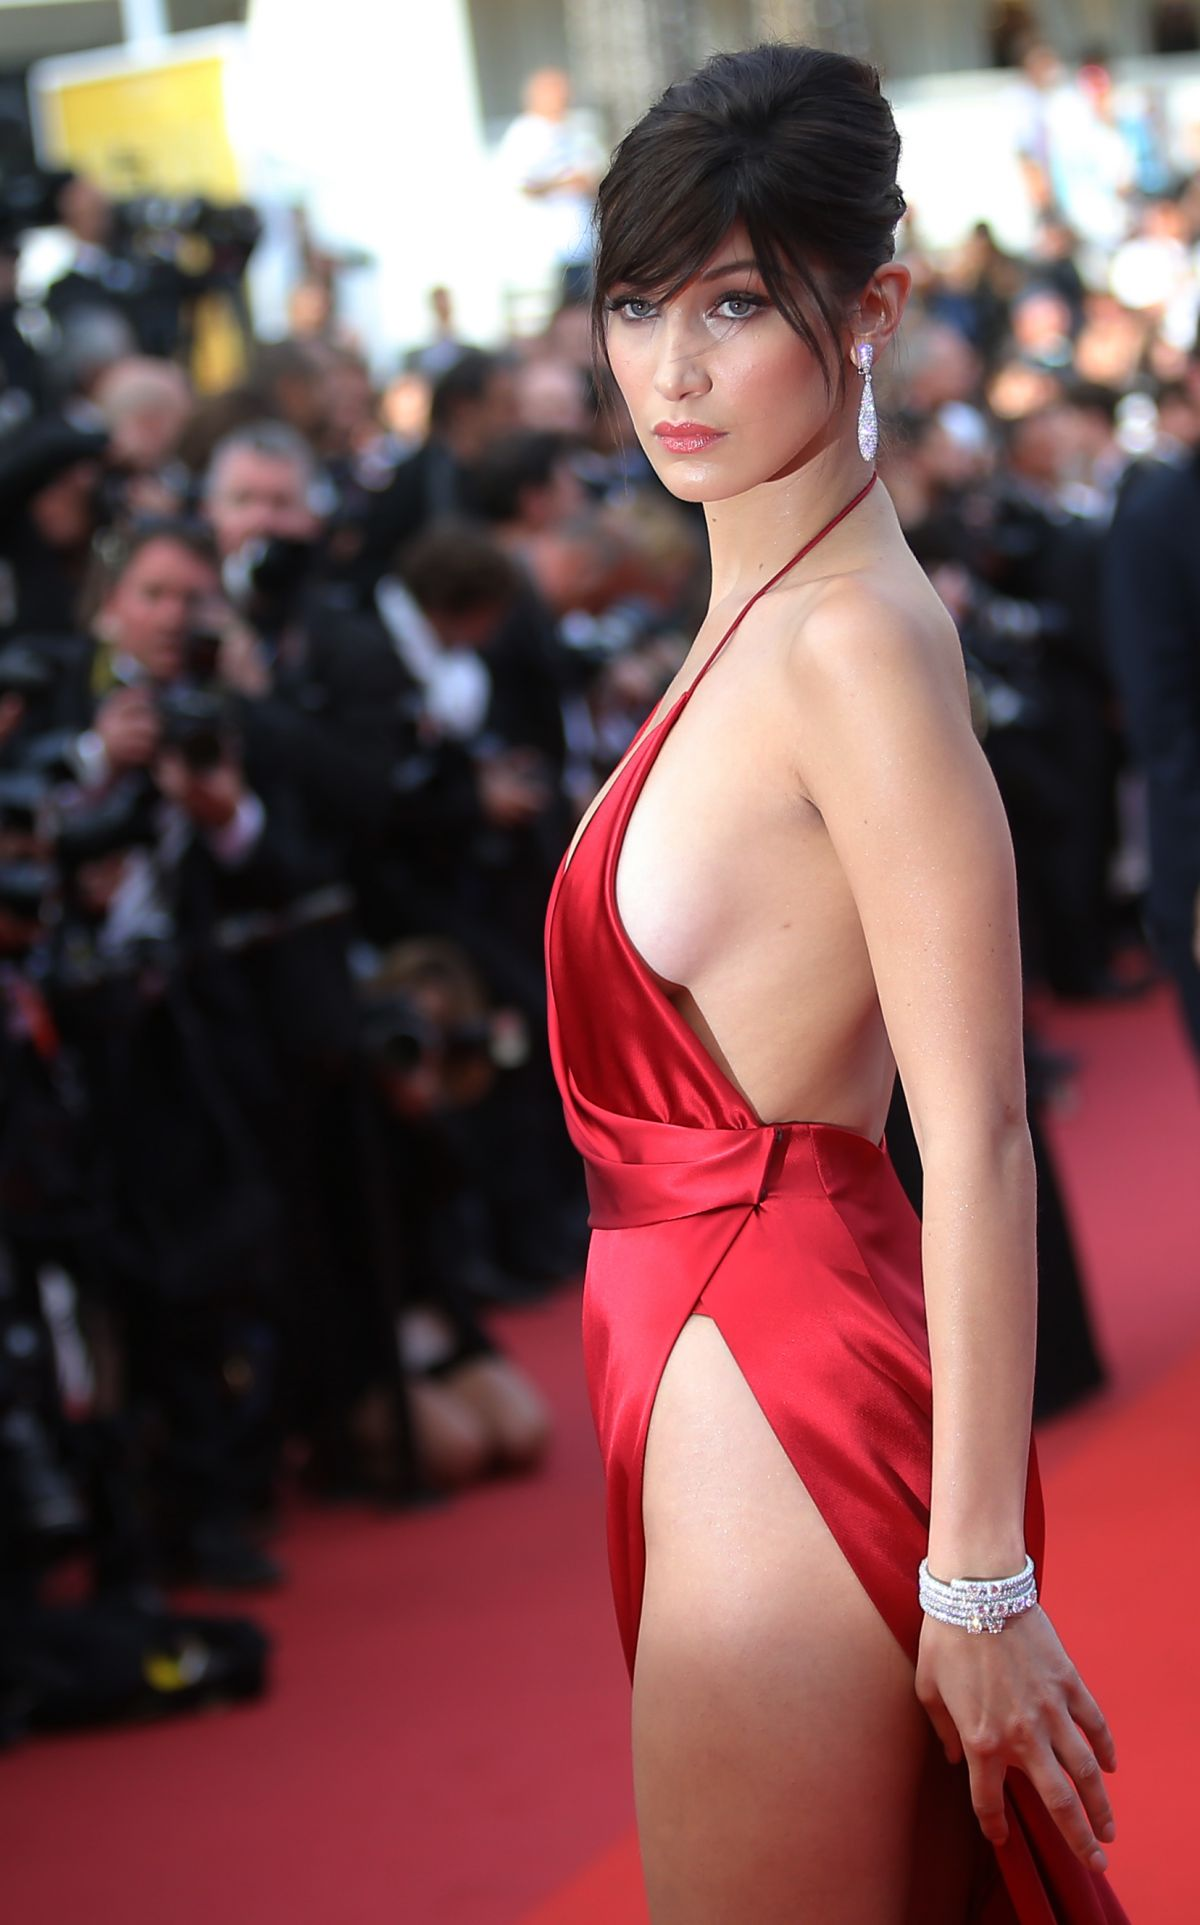 http-forum.ns4w.org-showthread.php-570203-bella-hadid-the-unknown-girl-premiere-at-69th-annual-cannes-film-festival-05-18-16-adds-s-08ce82a2f025b7305318944fd6bd9518_9